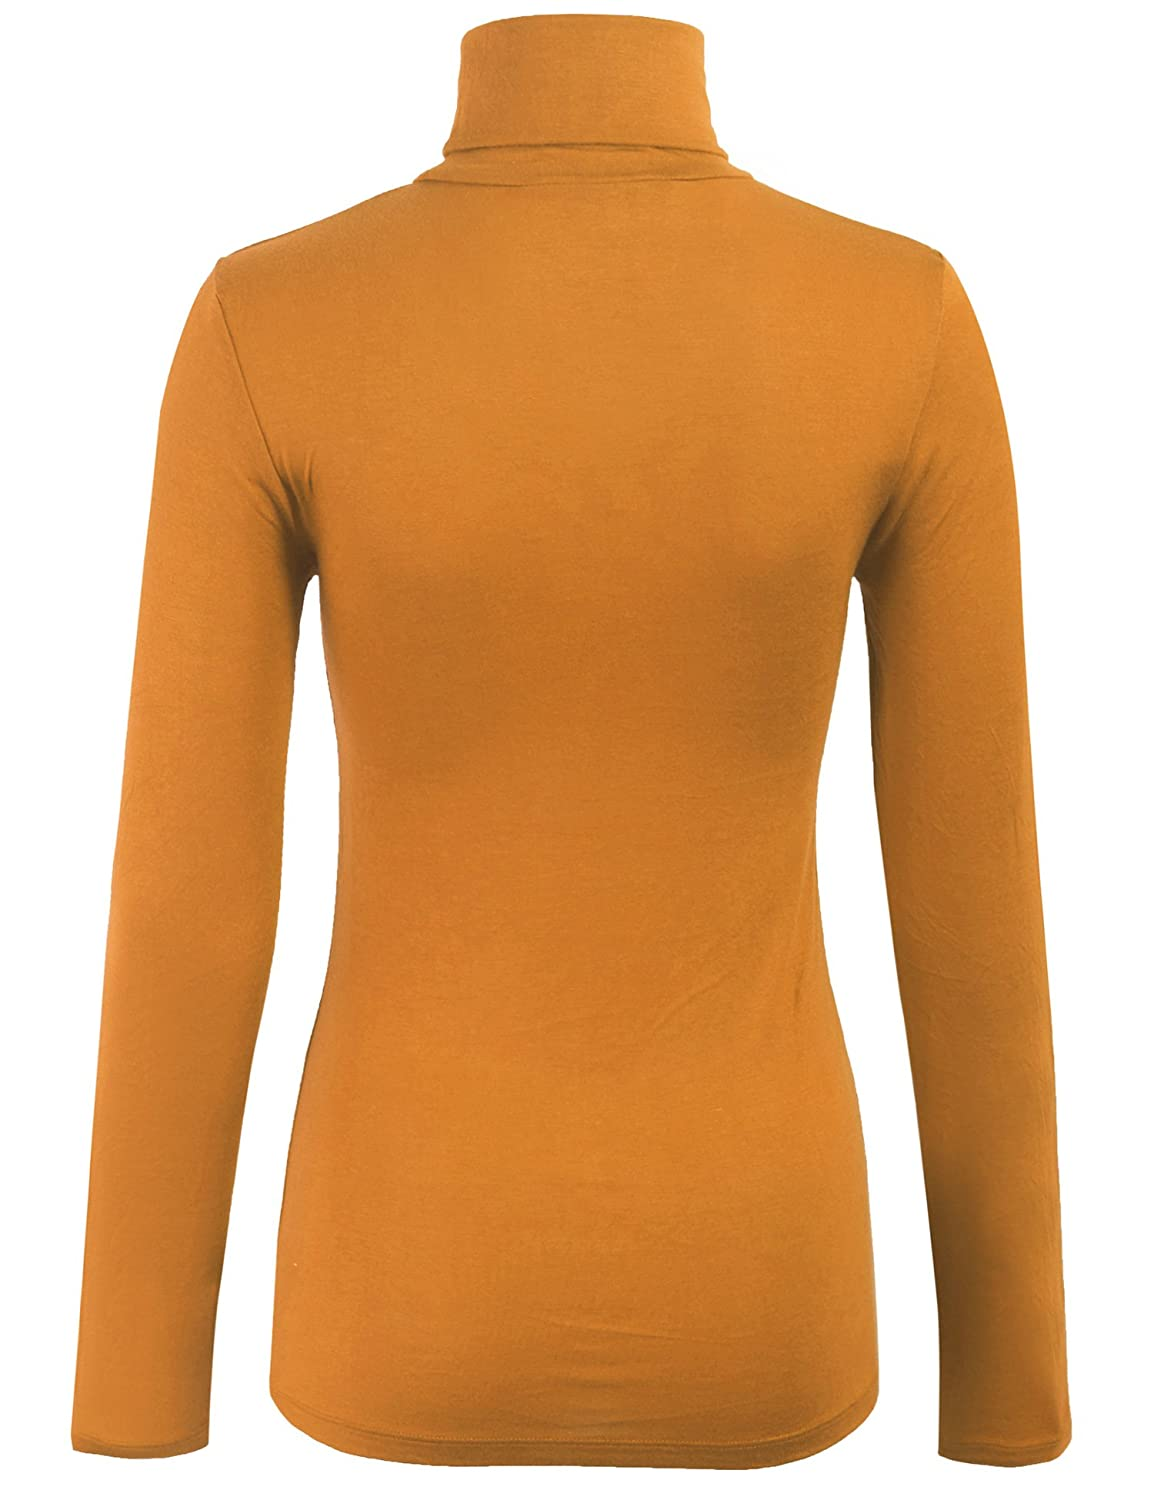 f7be09ff02a415 KOGMO Womens Turtleneck Long Sleeve Basic Solid Fitted Shirt with Stretch  at Amazon Women's Clothing store: